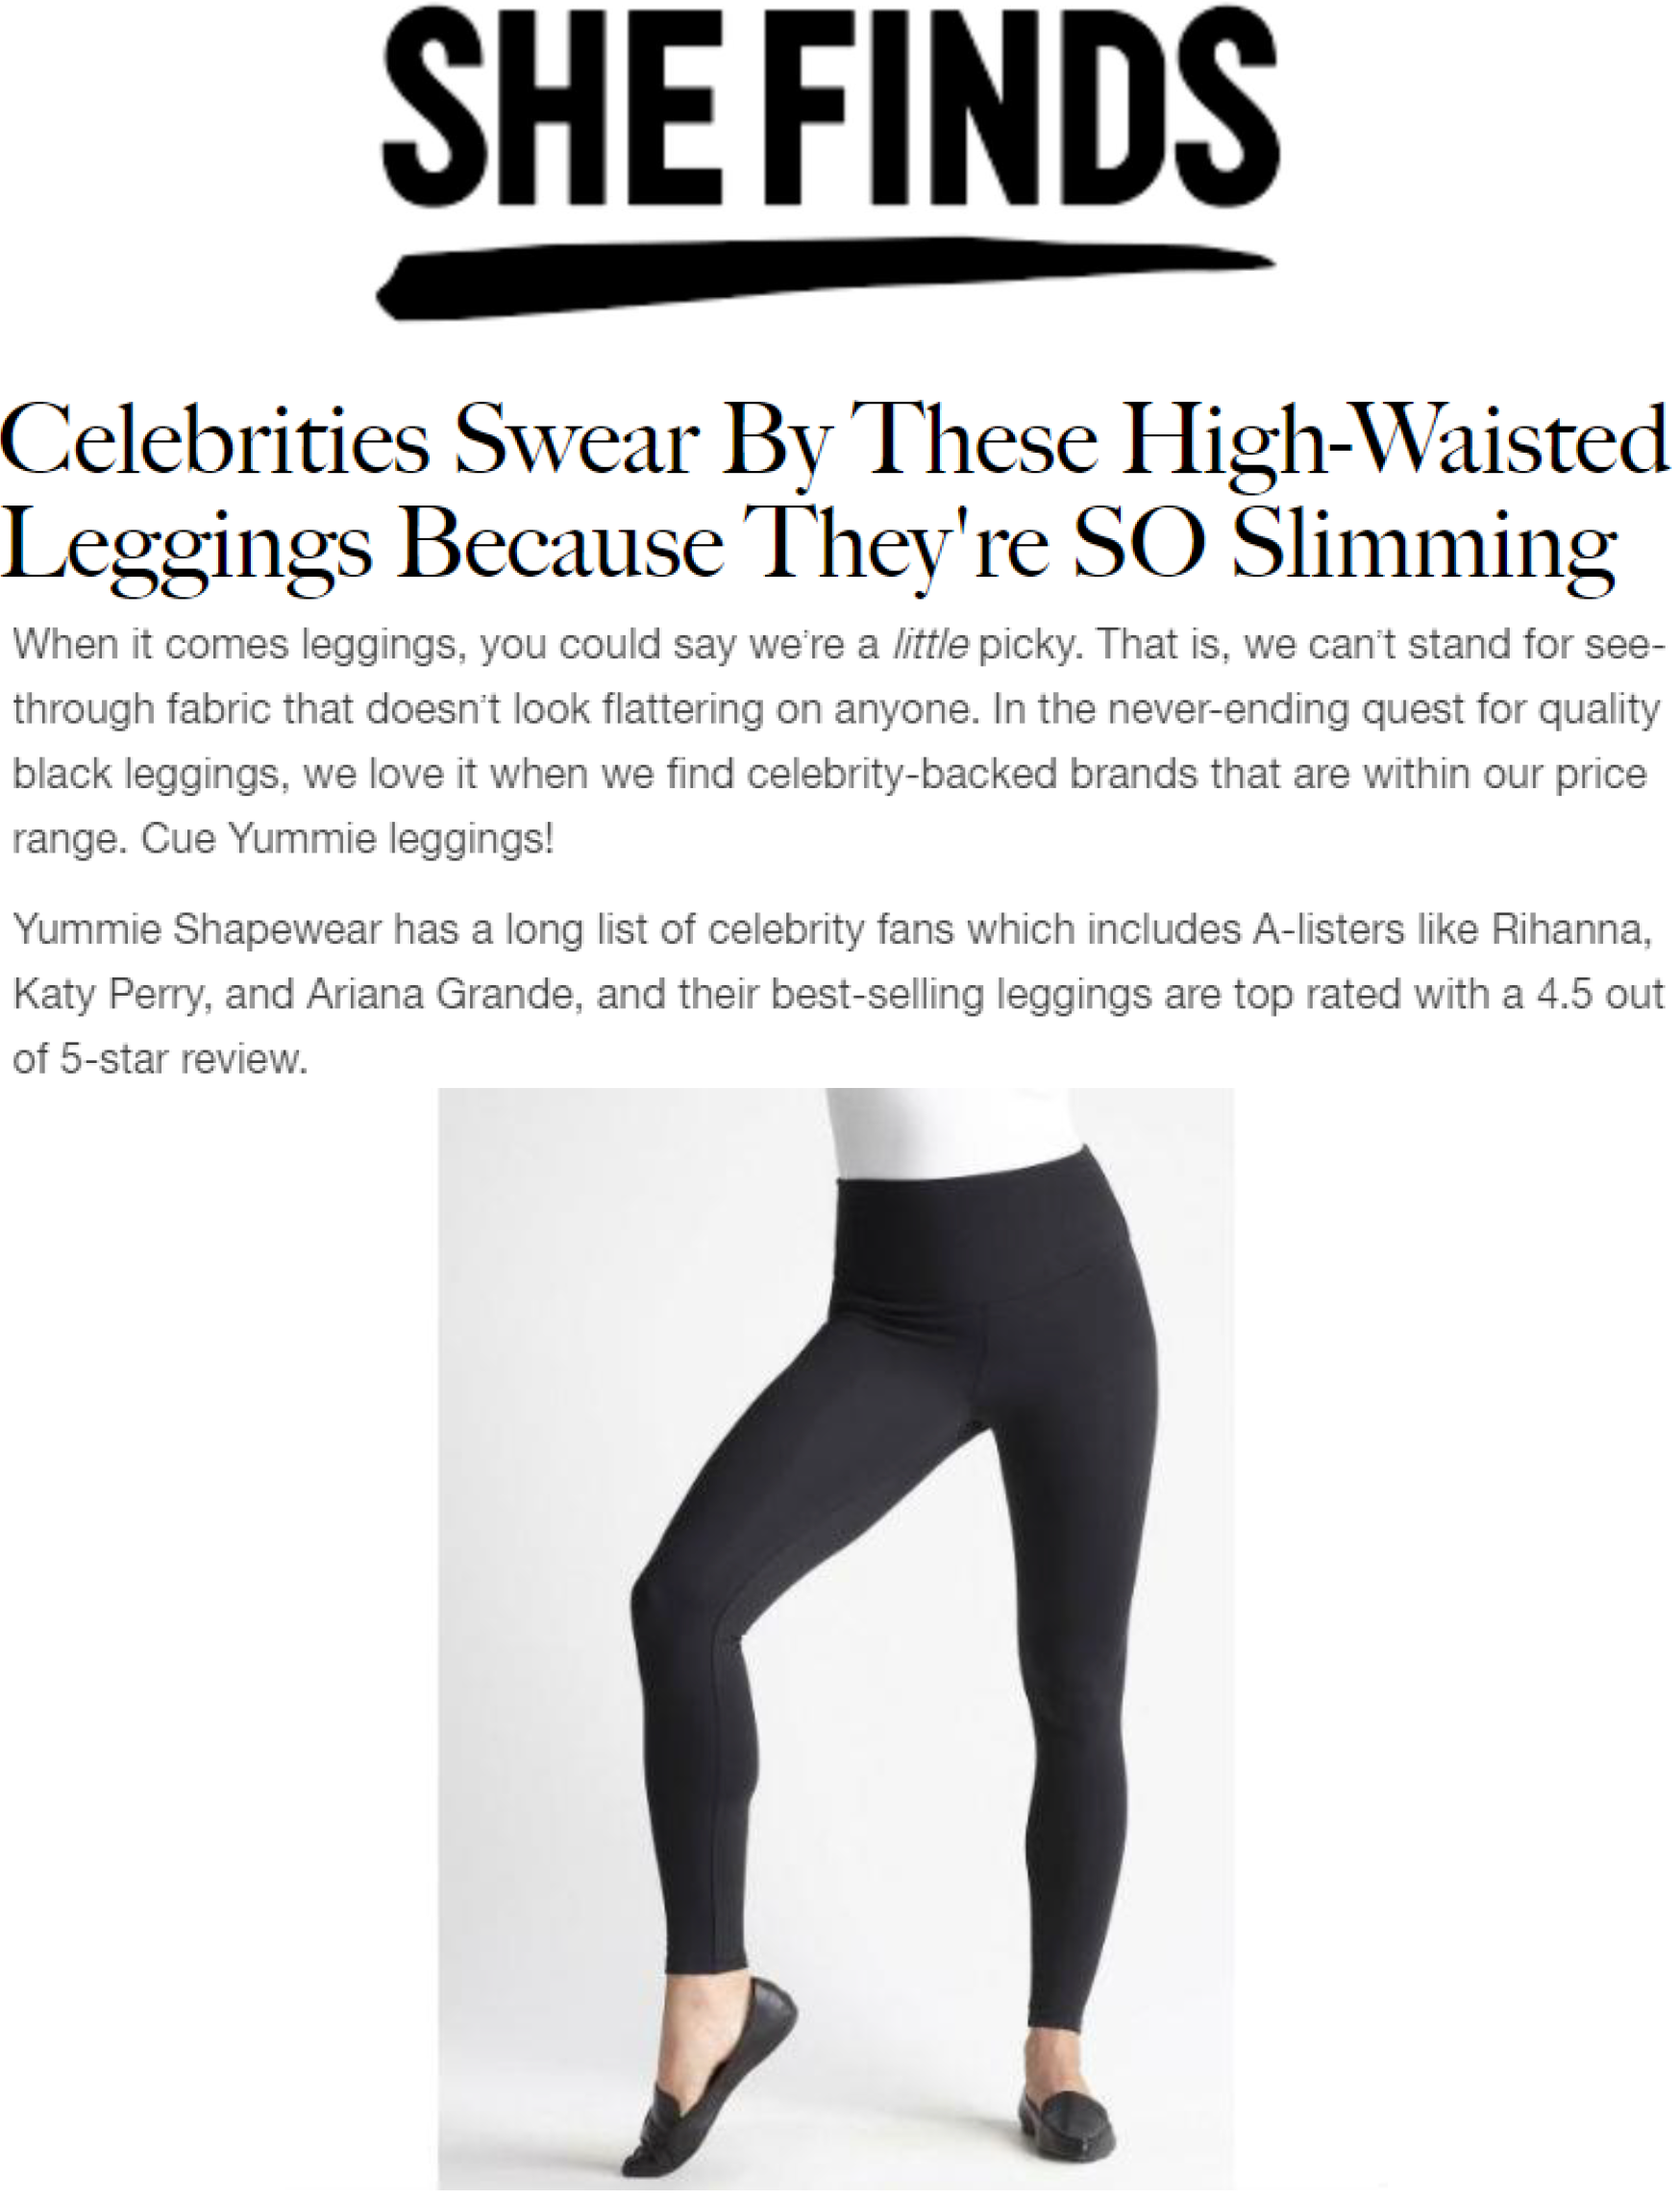 Shefinds.com discusses Yummie leggings in article.